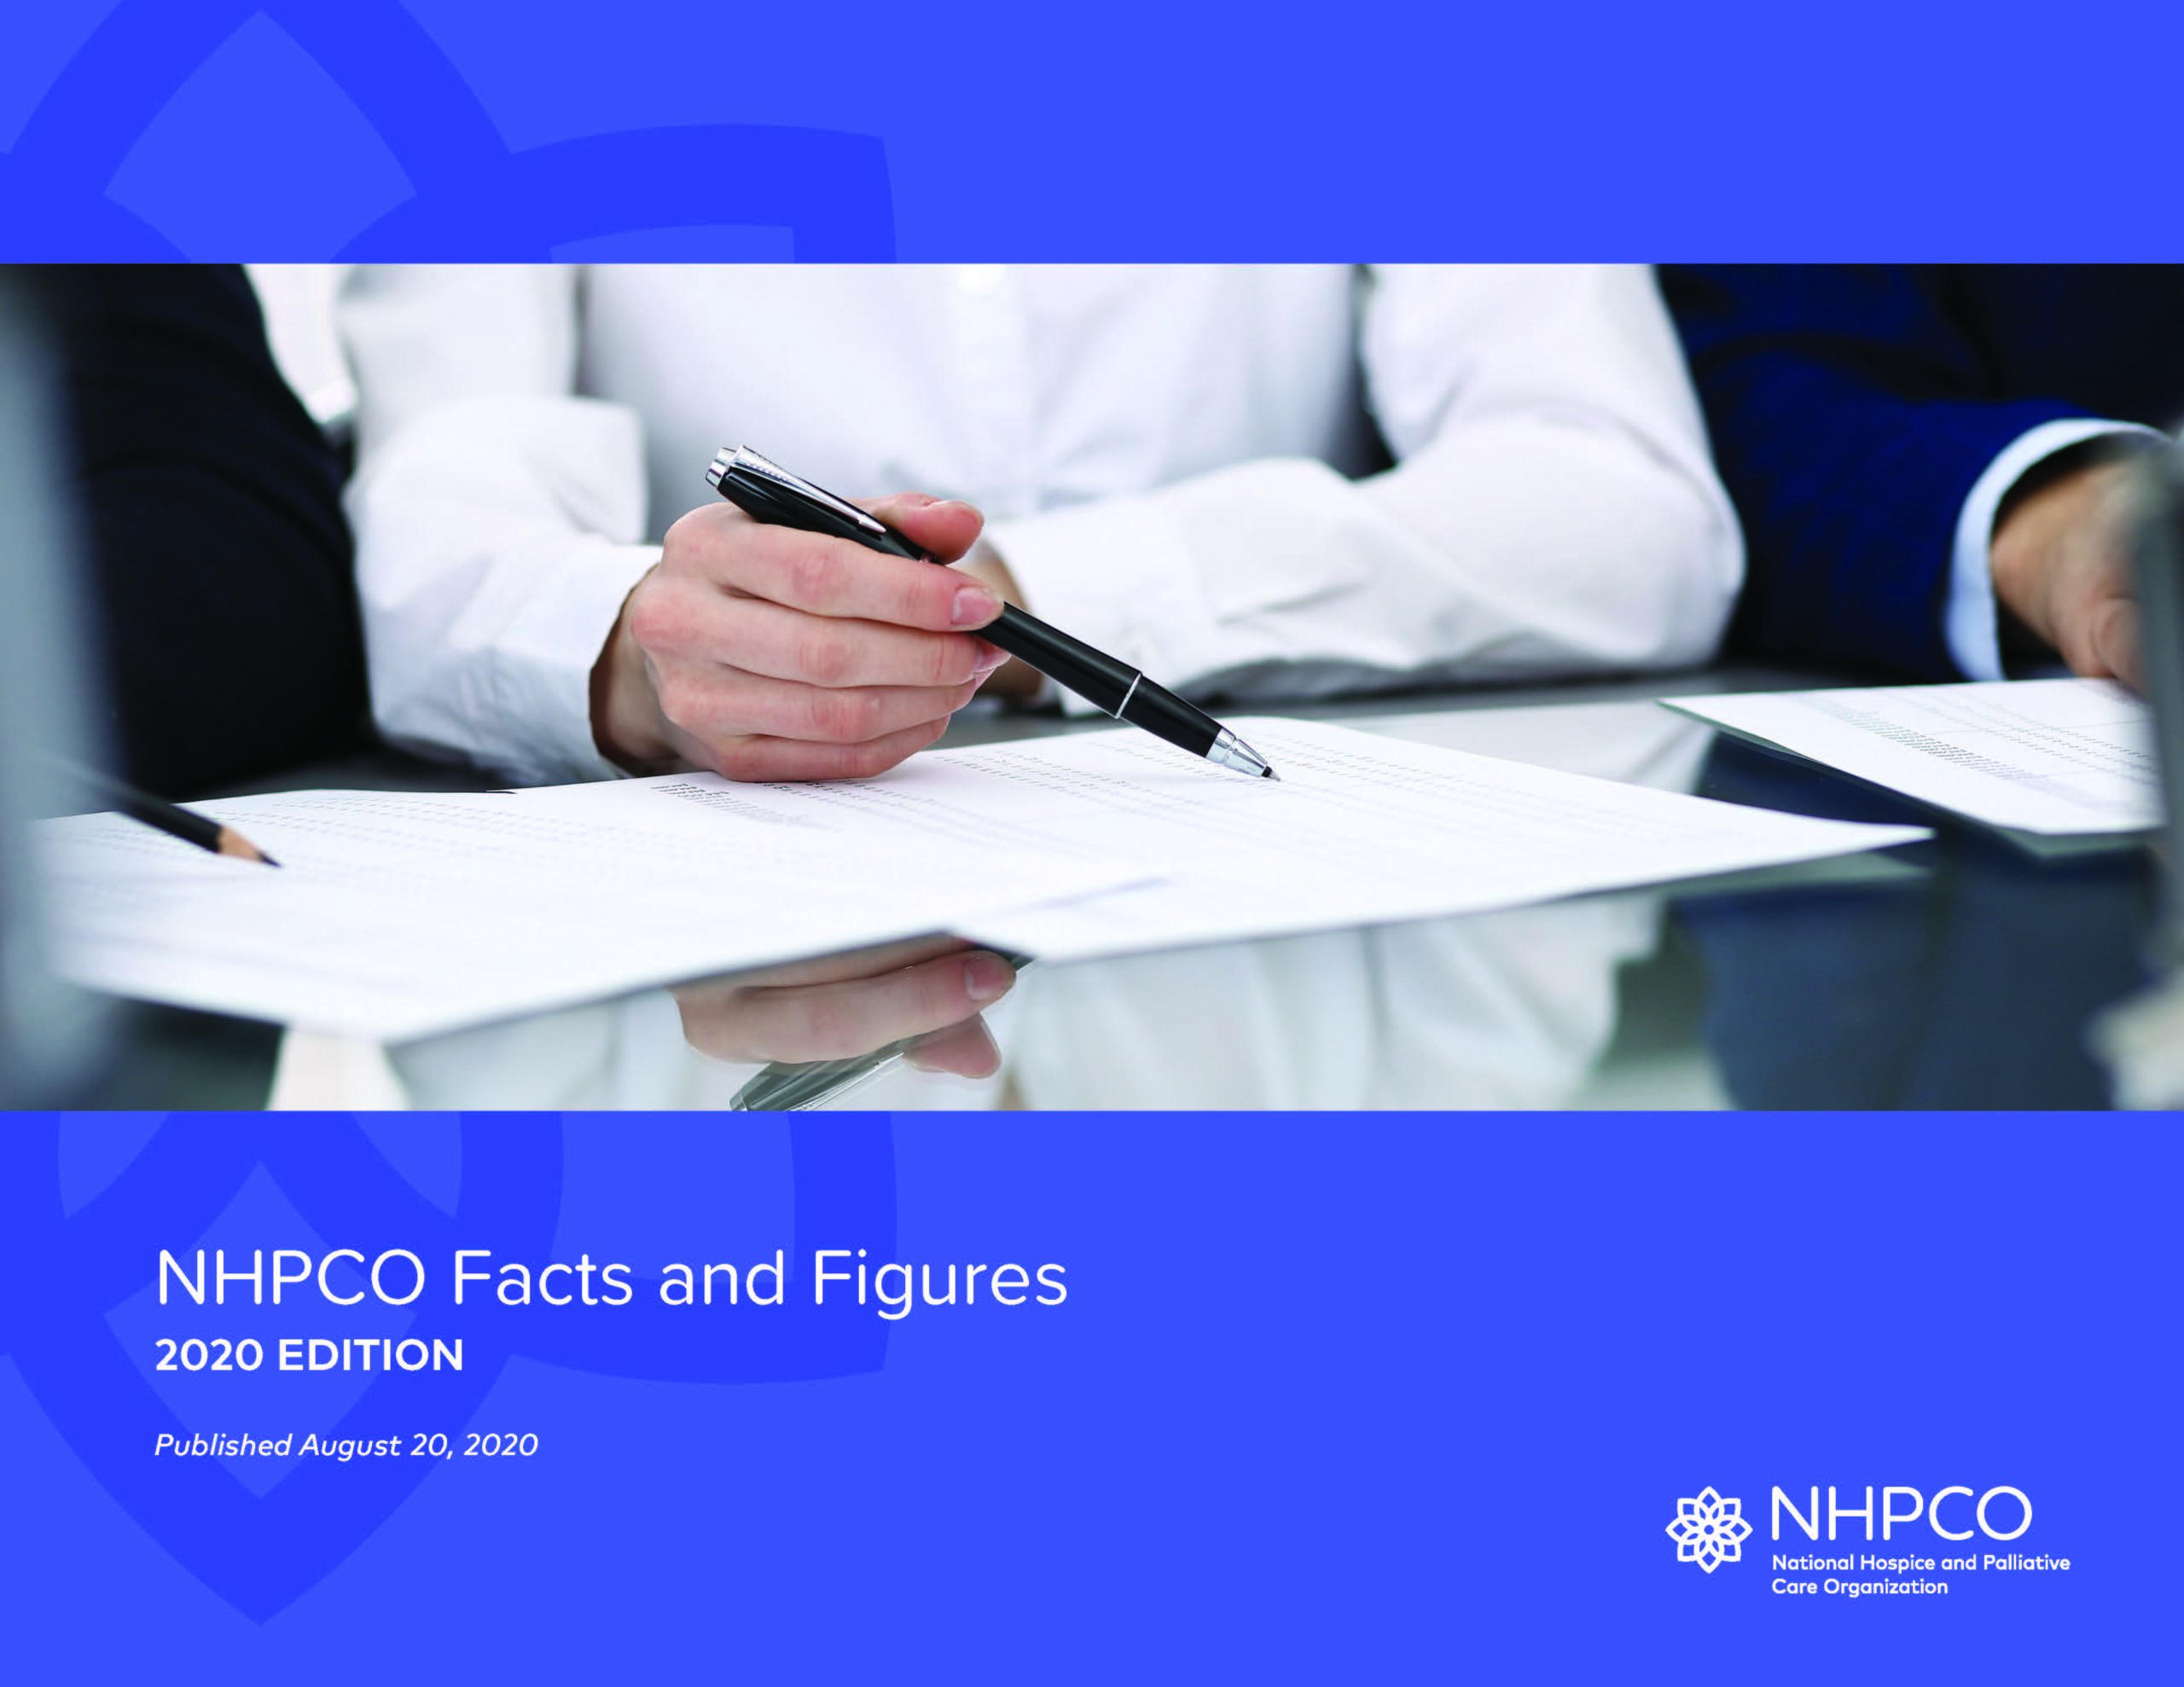 NHPCO Releases New Facts and Figures Report on Hospice Care in America